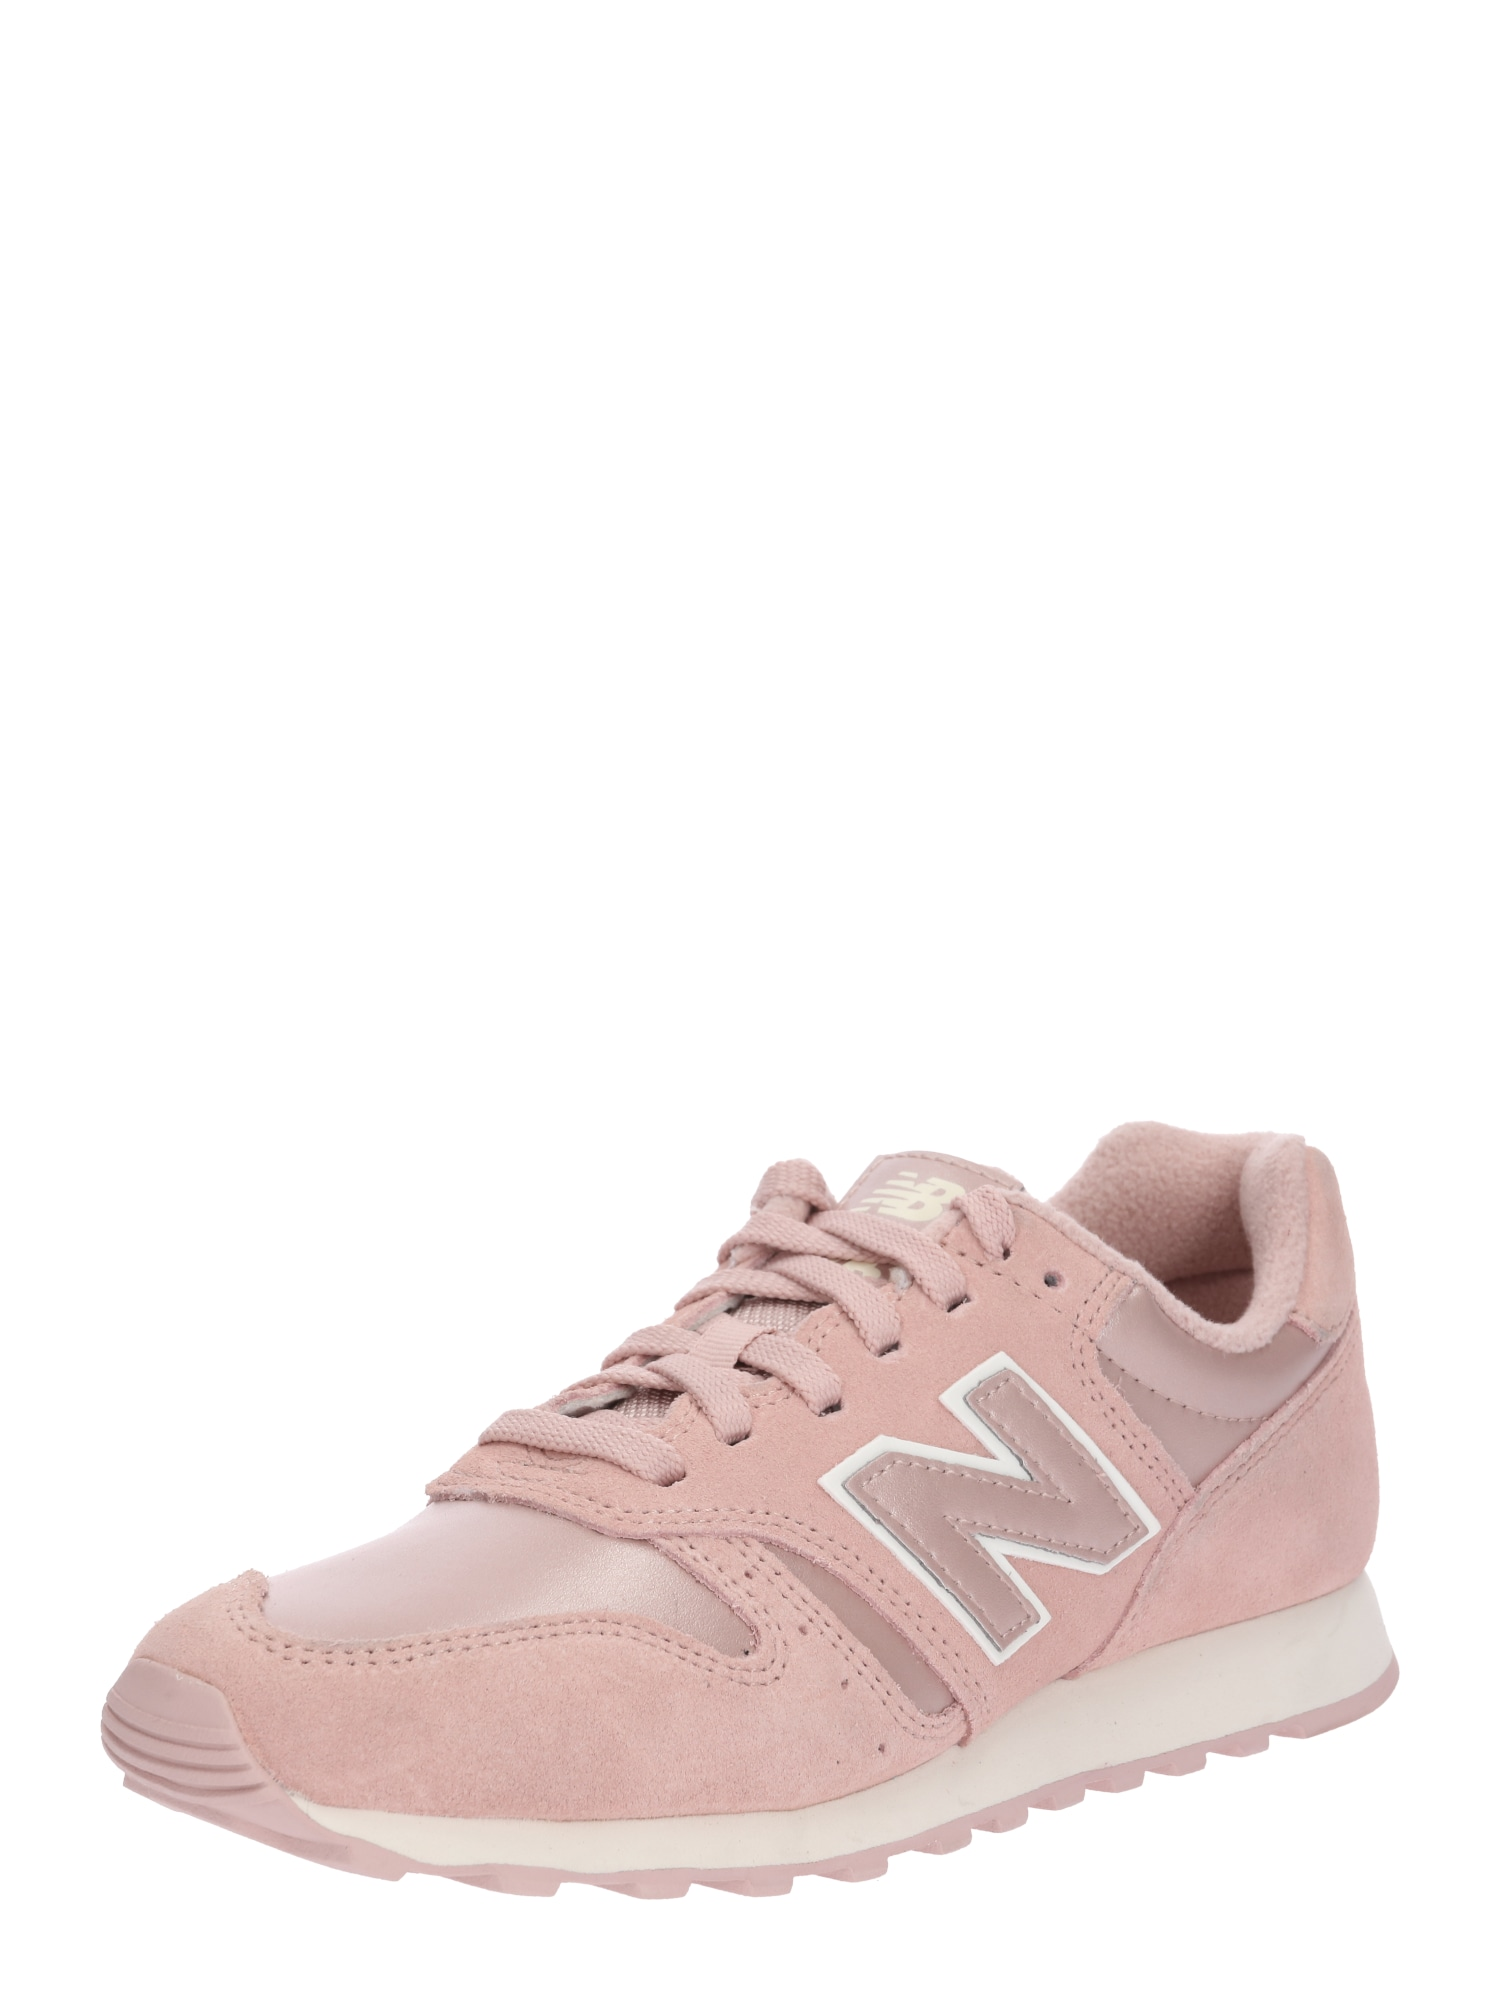 New Balance, Dames Sneakers laag 'WL574', rosé